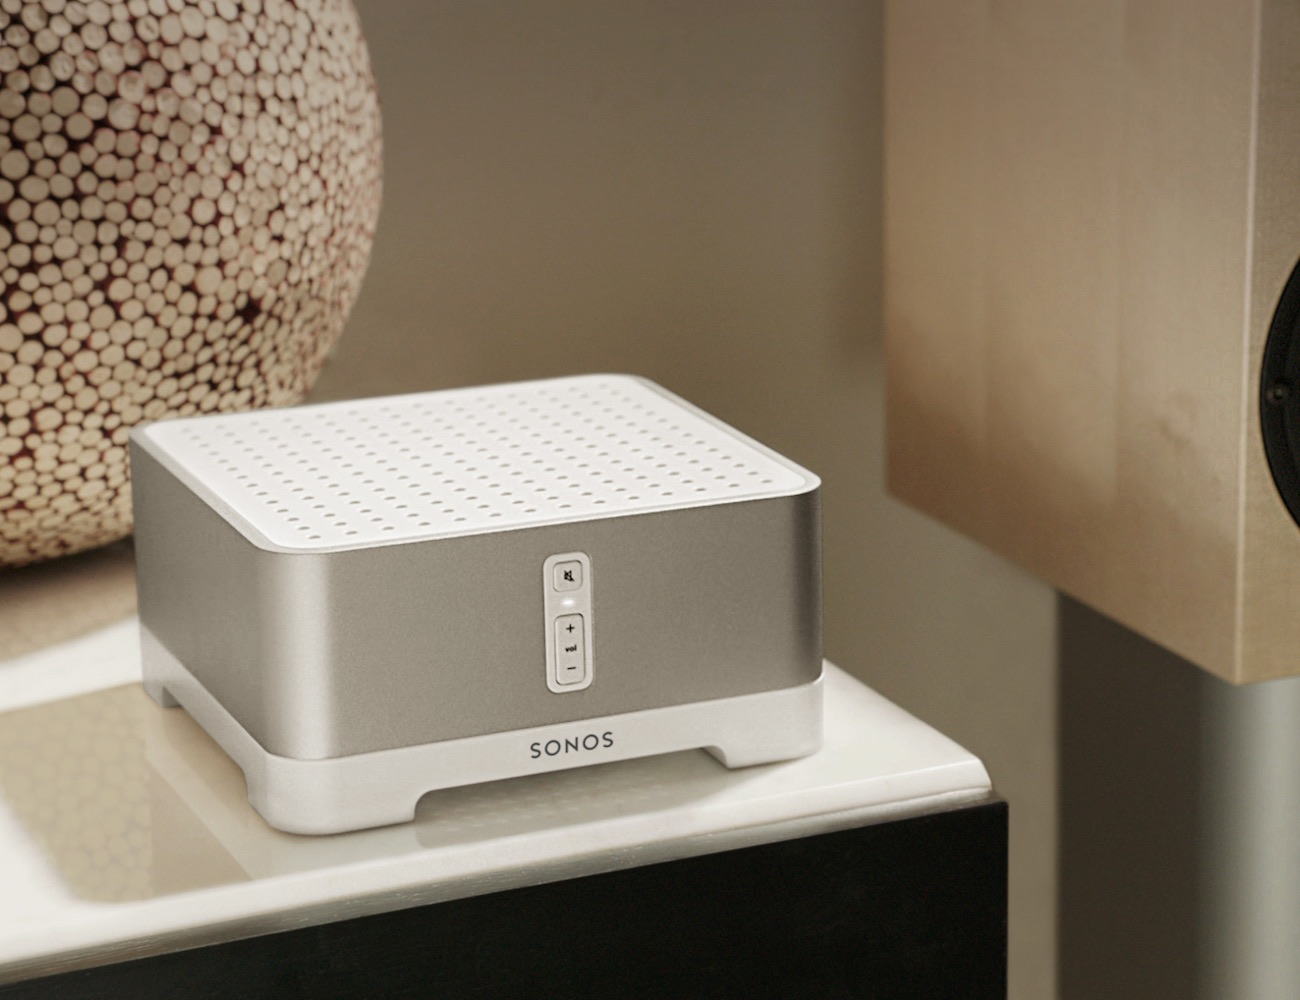 connect-wireless-music-player-by-sonos-03